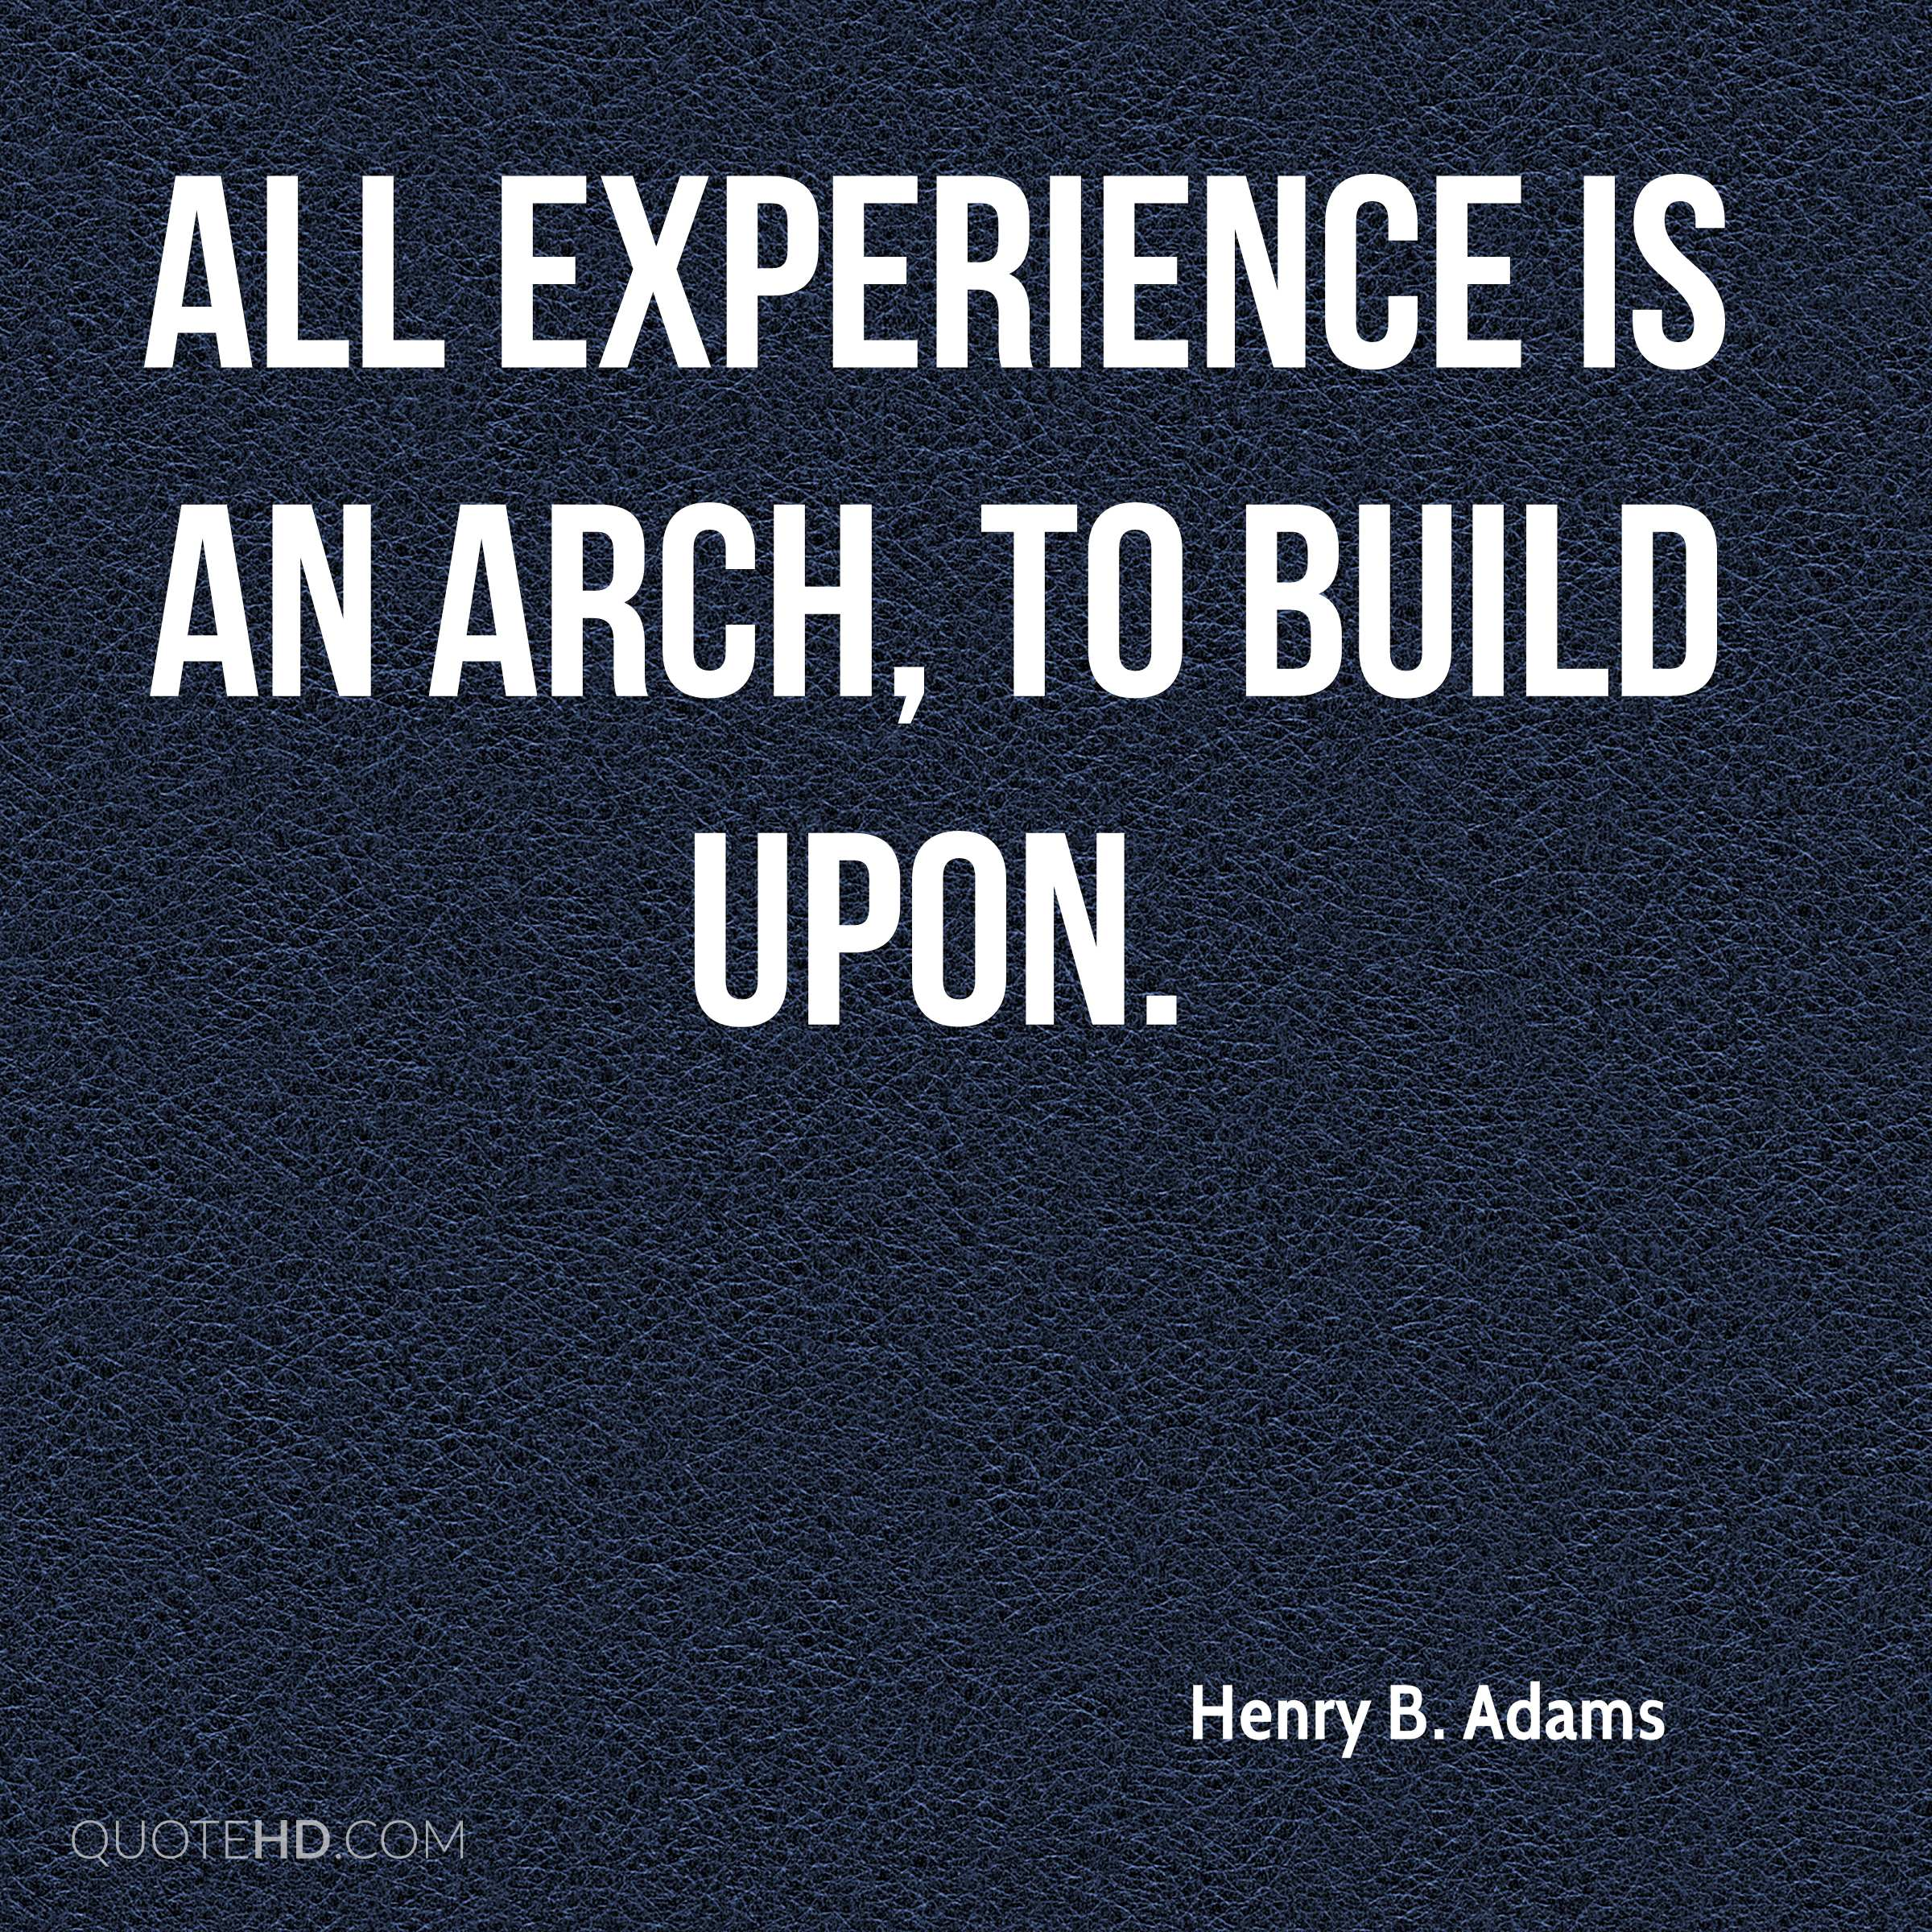 All experience is an arch, to build upon.